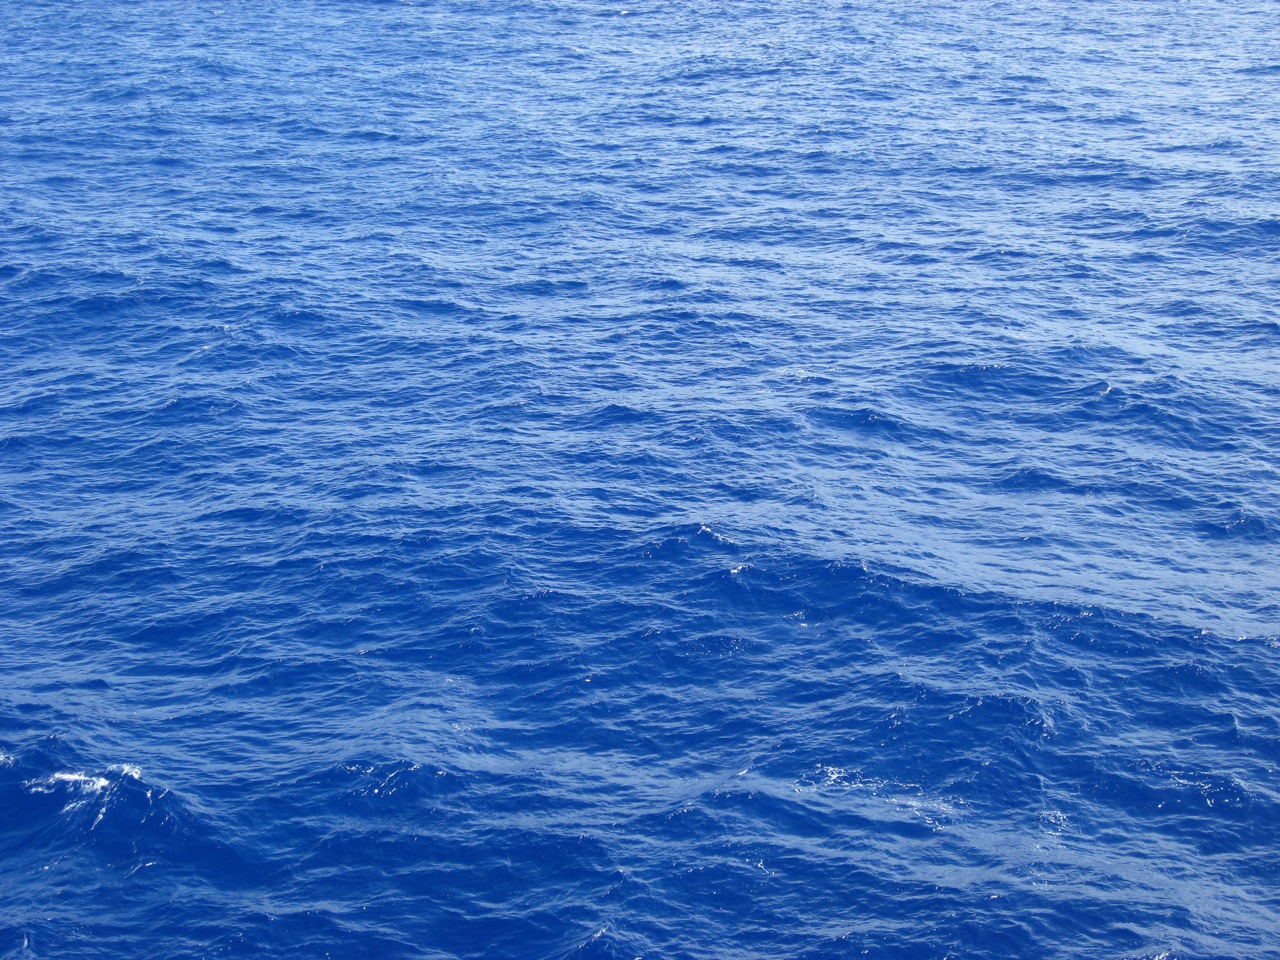 Ocean Water Near Kaua'i